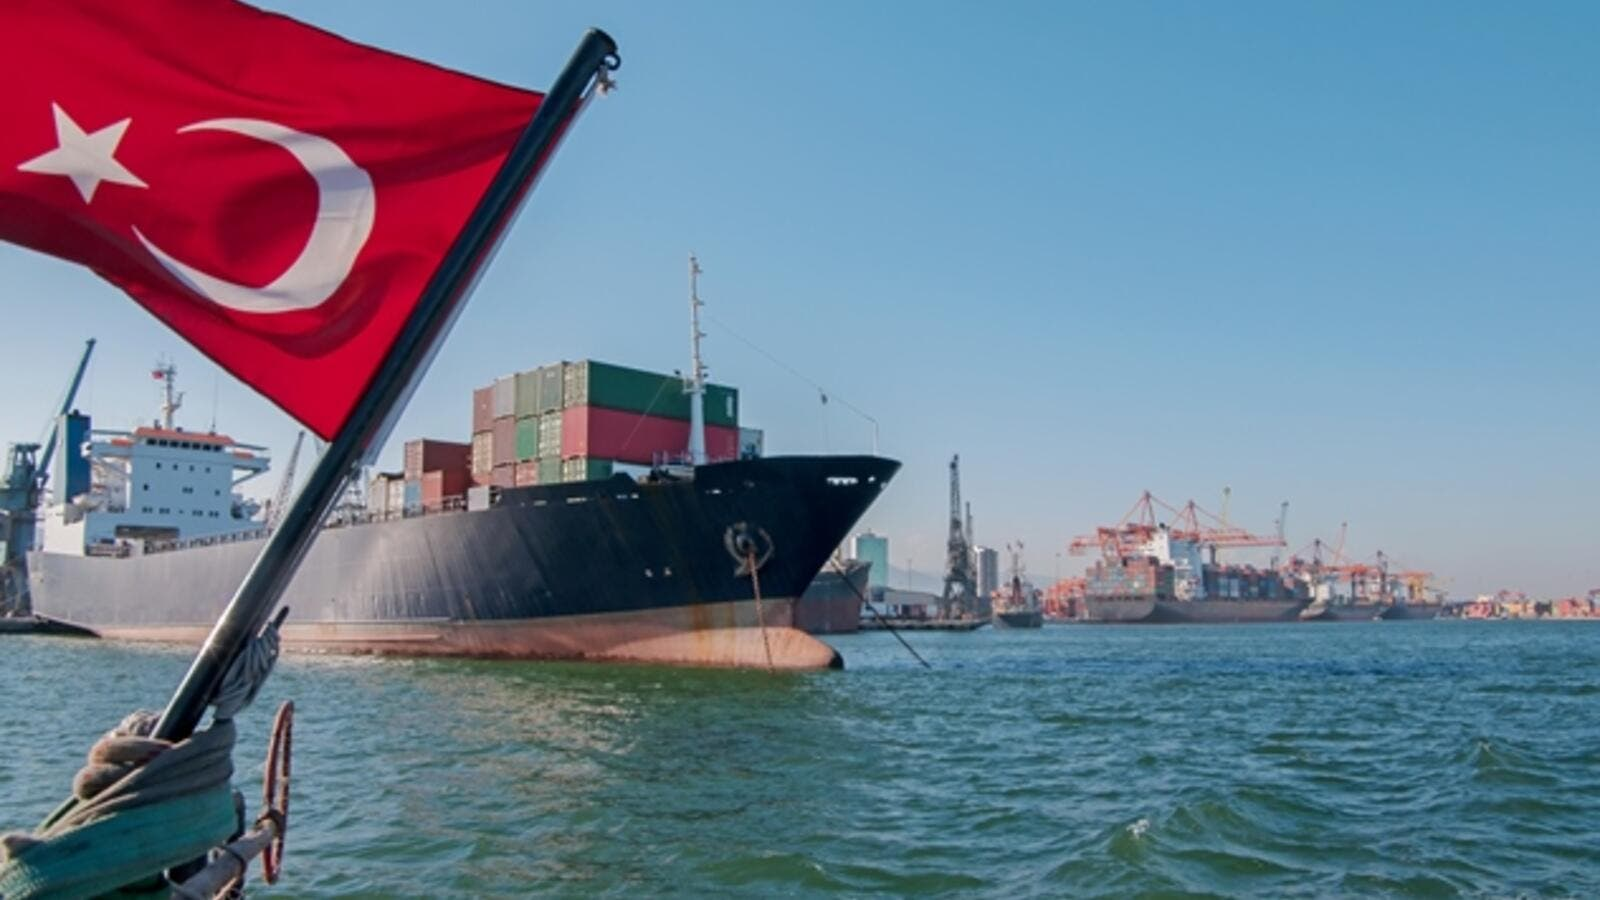 Turkey is eager to use local currencies in bilateral trade deals to counter attacks by the U.S. (Shutterstock)